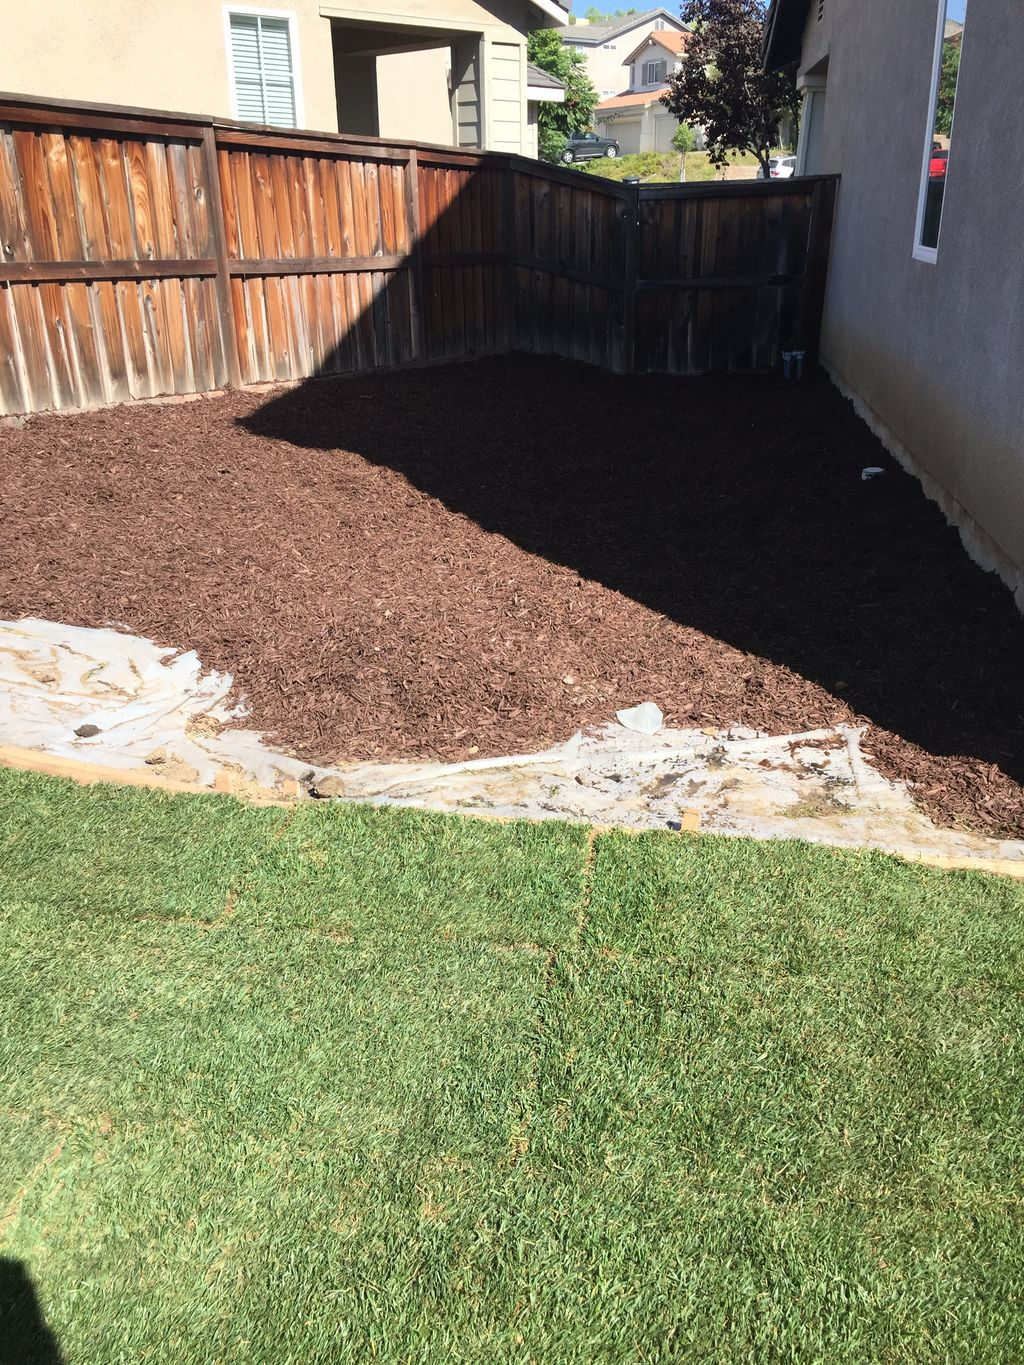 New irrigation system, 700sq ft new sod, 7 yards lava red rock